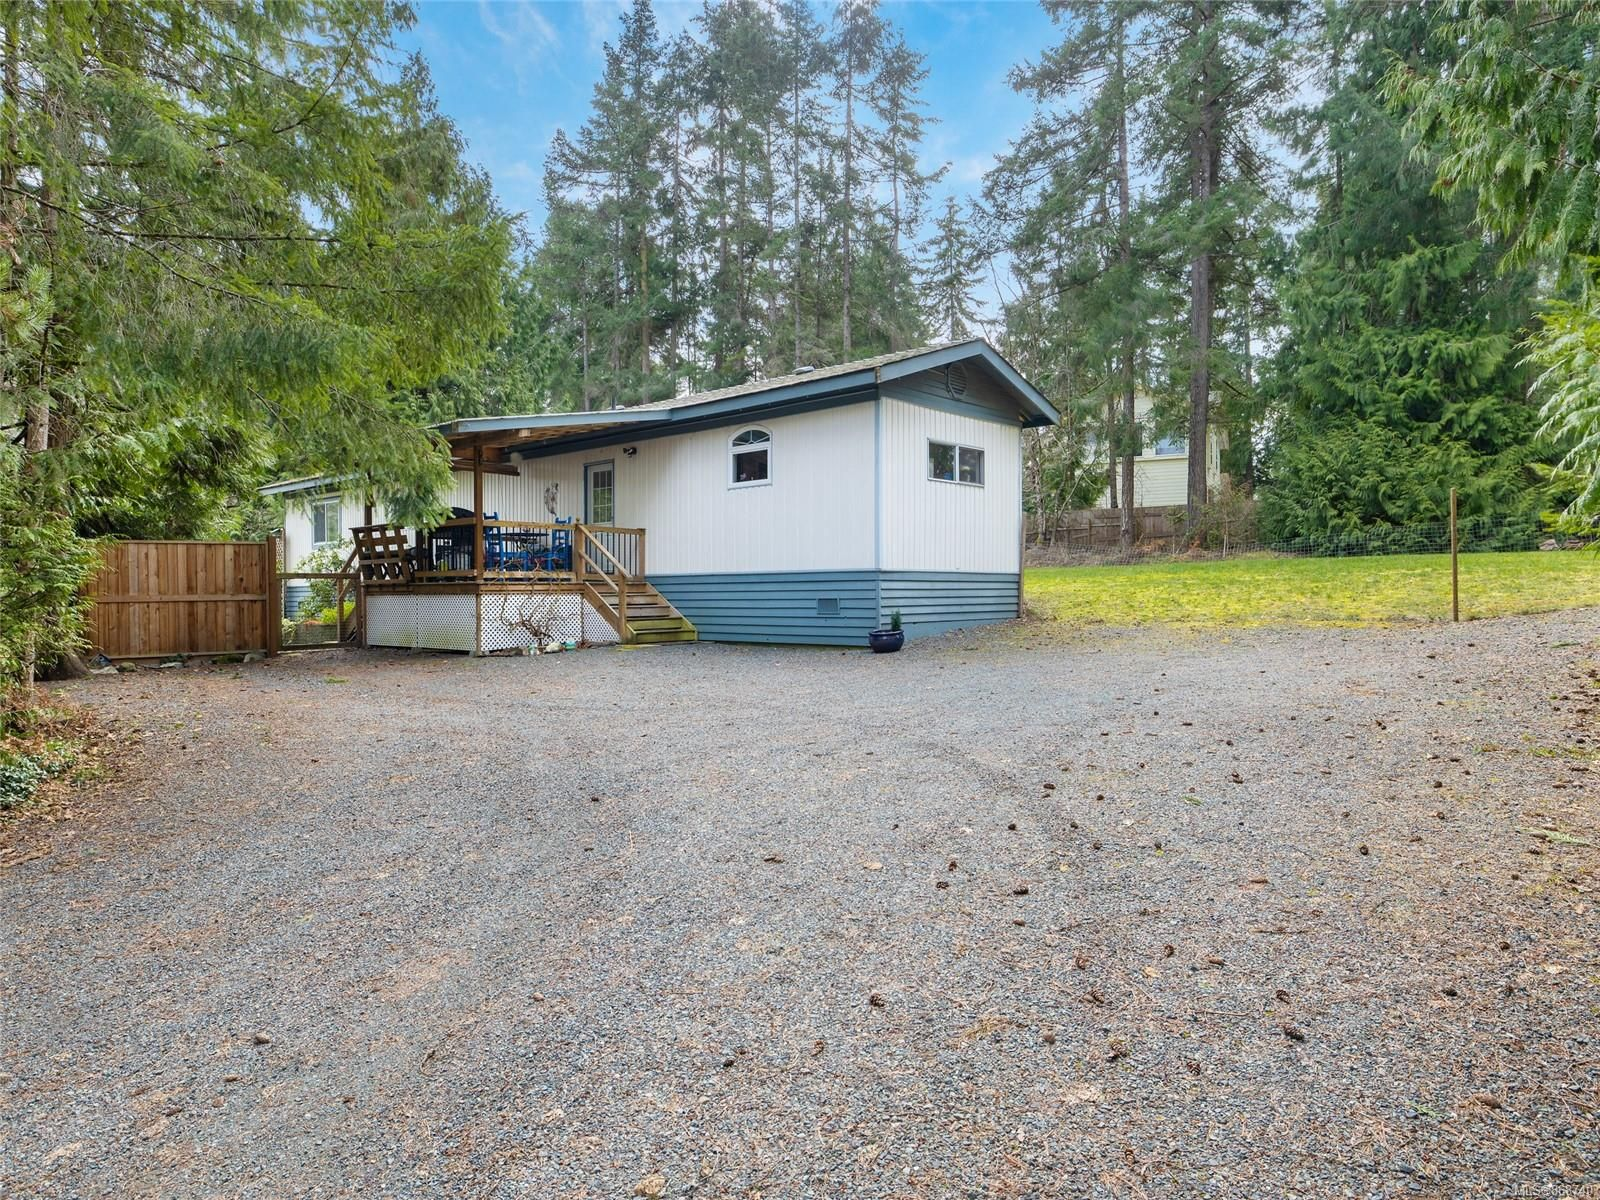 Main Photo: 1106 Fair Rd in : PQ Parksville House for sale (Parksville/Qualicum)  : MLS®# 868740